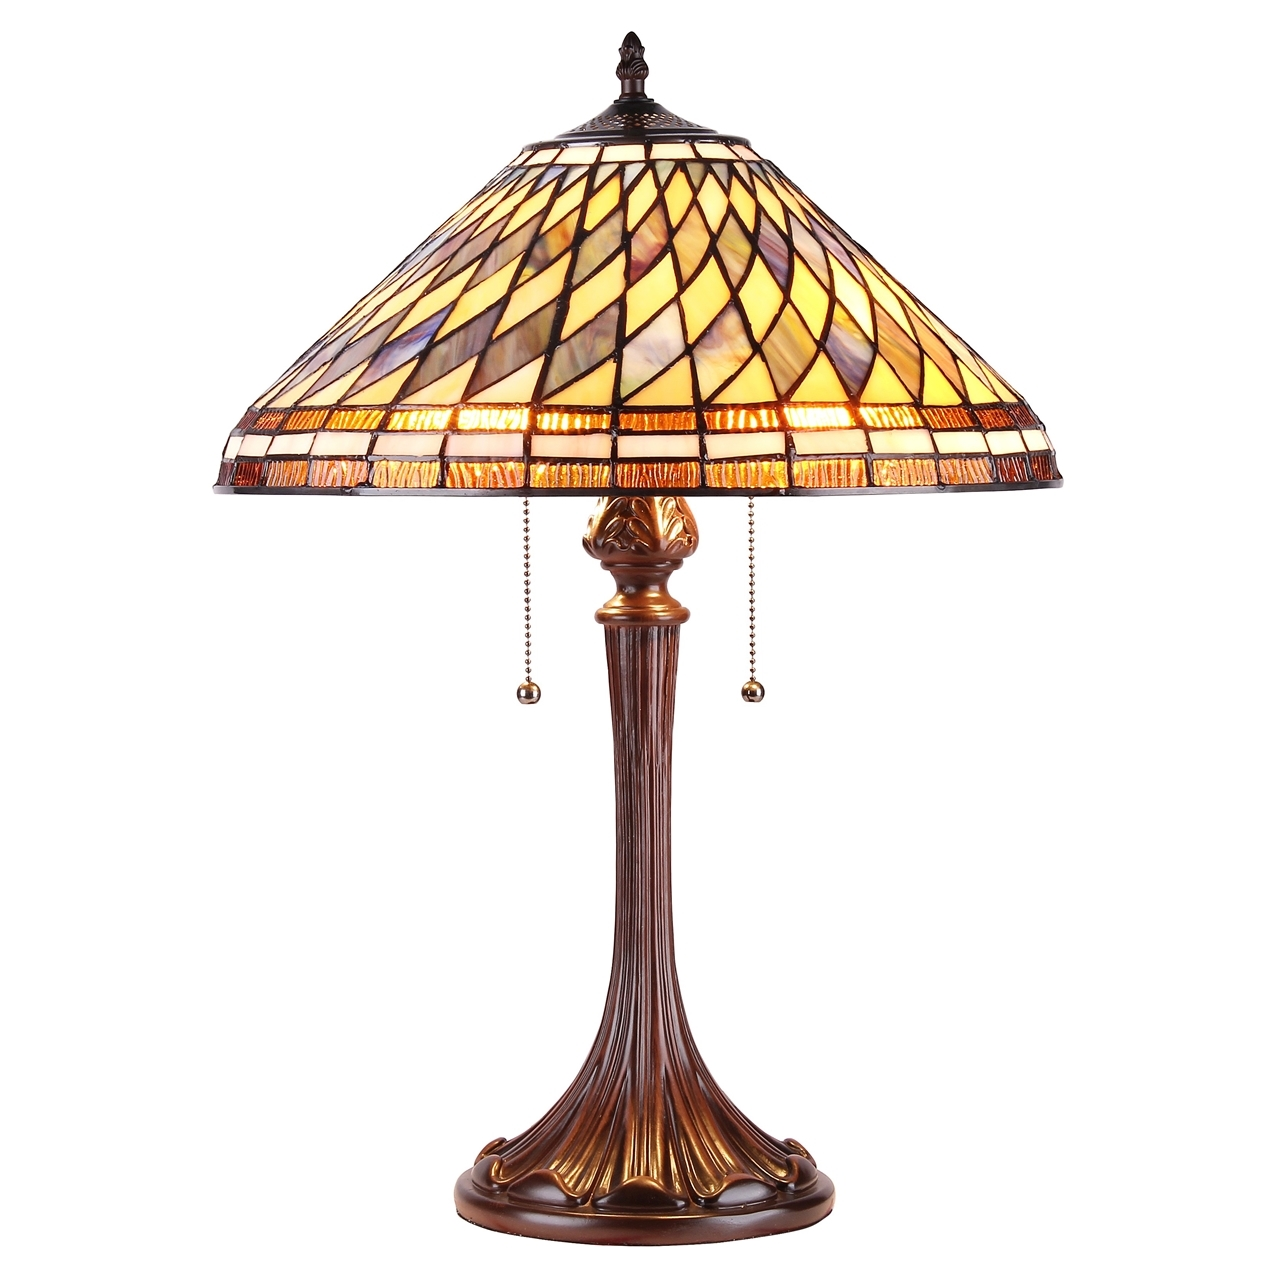 Chloe lighting inc tiffany lamp tiffany lamps tiffany style chloe lighting percy tiffany style 2 light mission table lamp geotapseo Choice Image